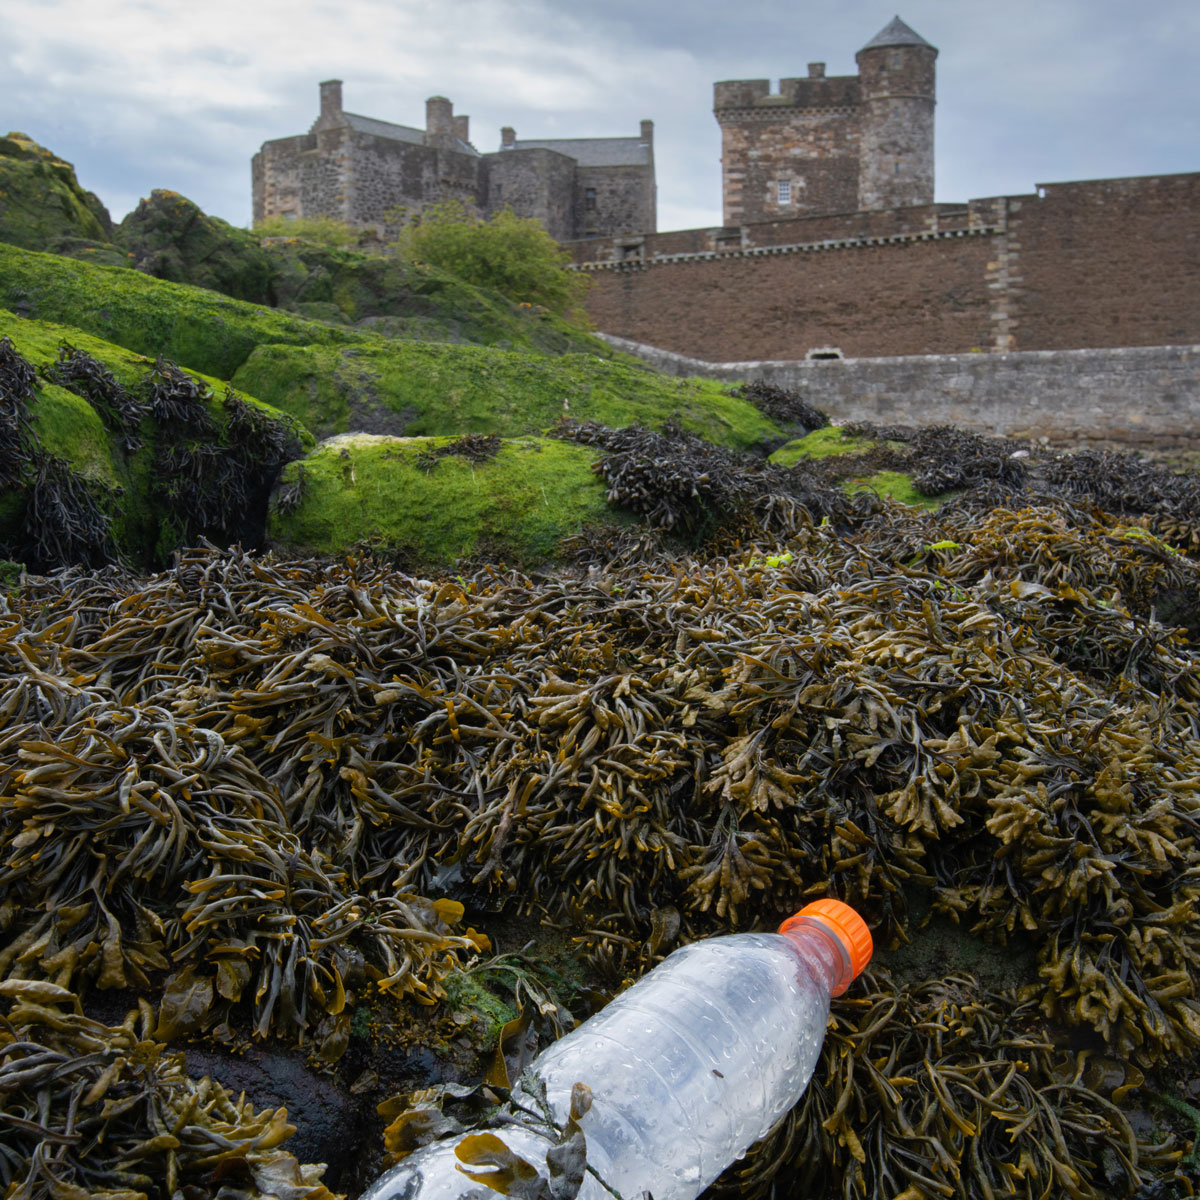 A plastic bottle sits on a shore of seaweed in front of Blackness Castle